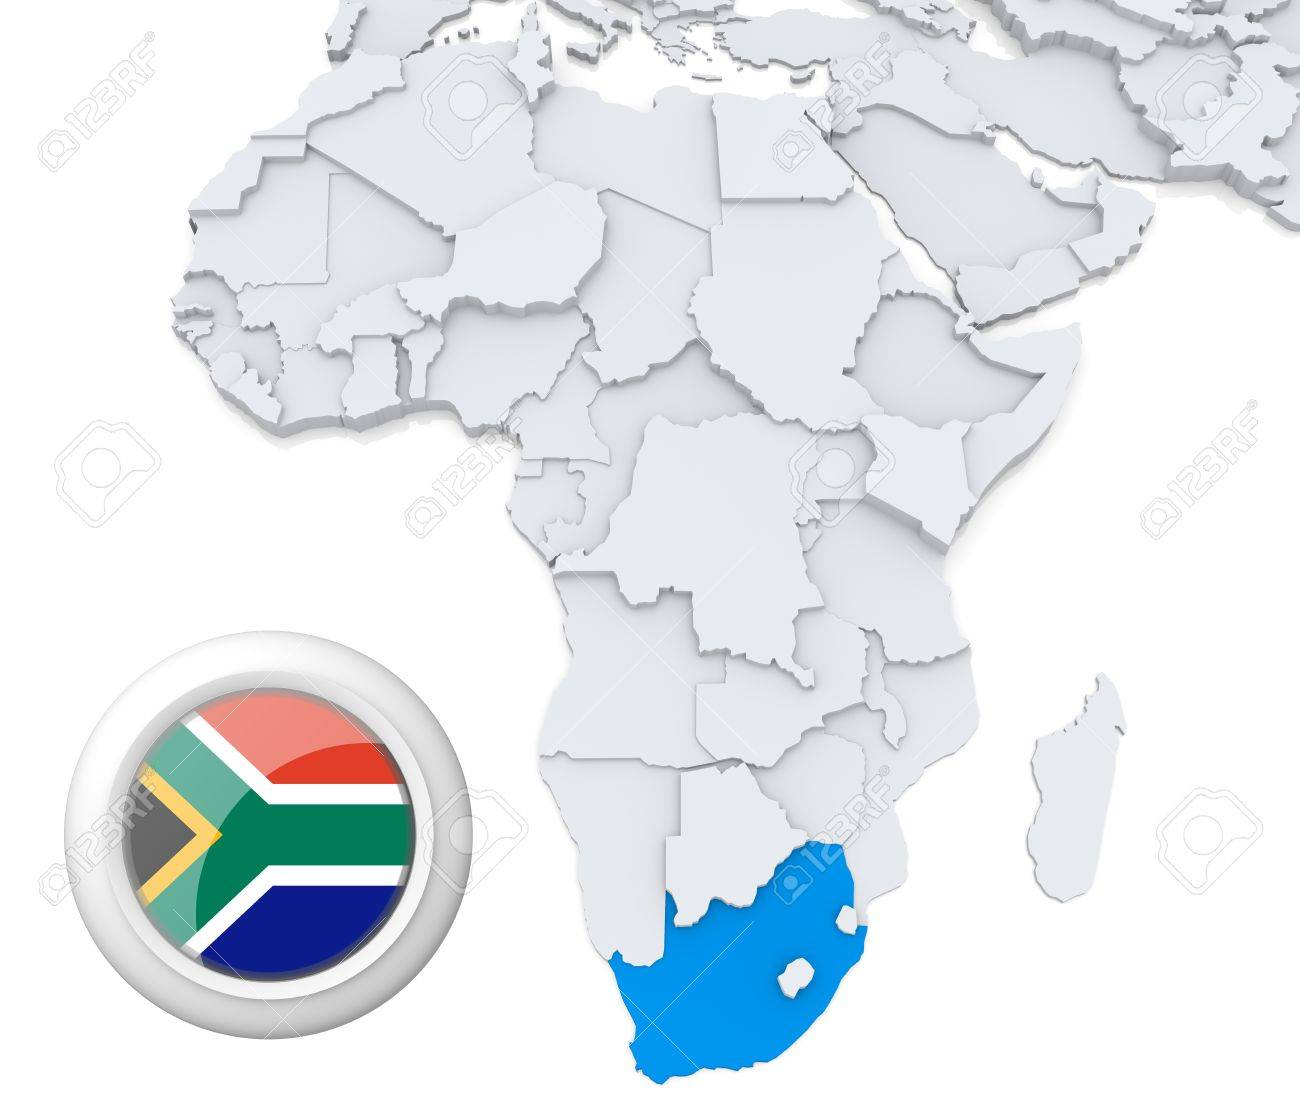 3D Modeled Map Of Africa With Highlighted State Of South Africa